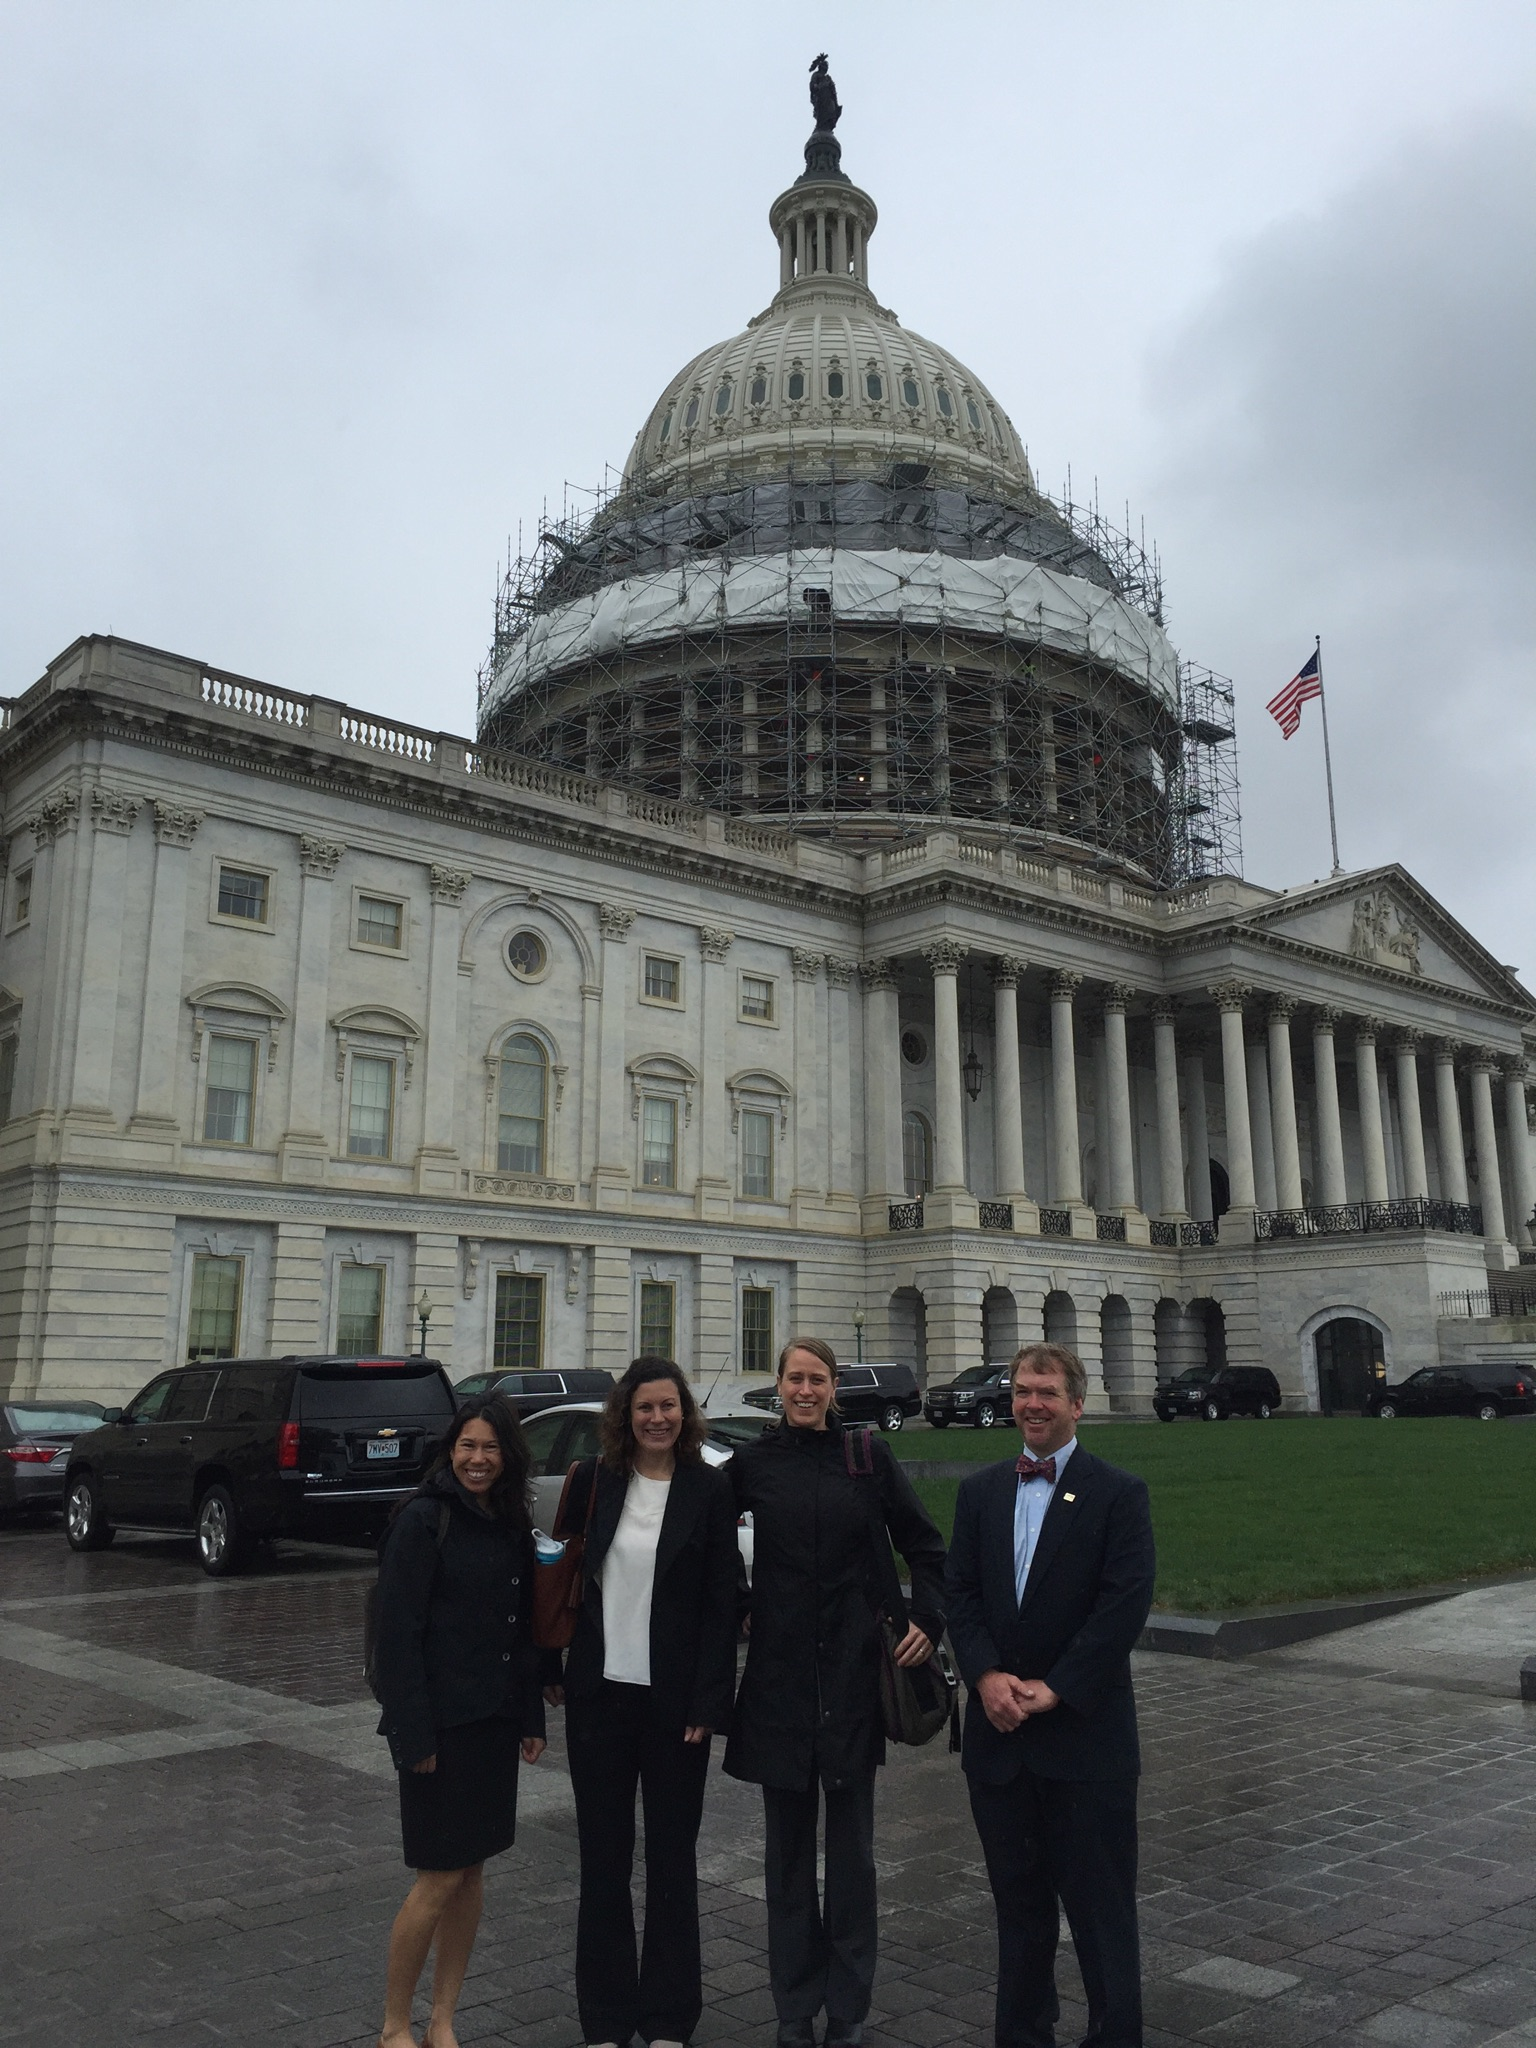 Representatives from SuperFeet, REI, The Mountaineers, and American Whitewater working together to talk with Washington DC lawmakers about outdoor recreation.  Photo credit: Katherine Hollis.